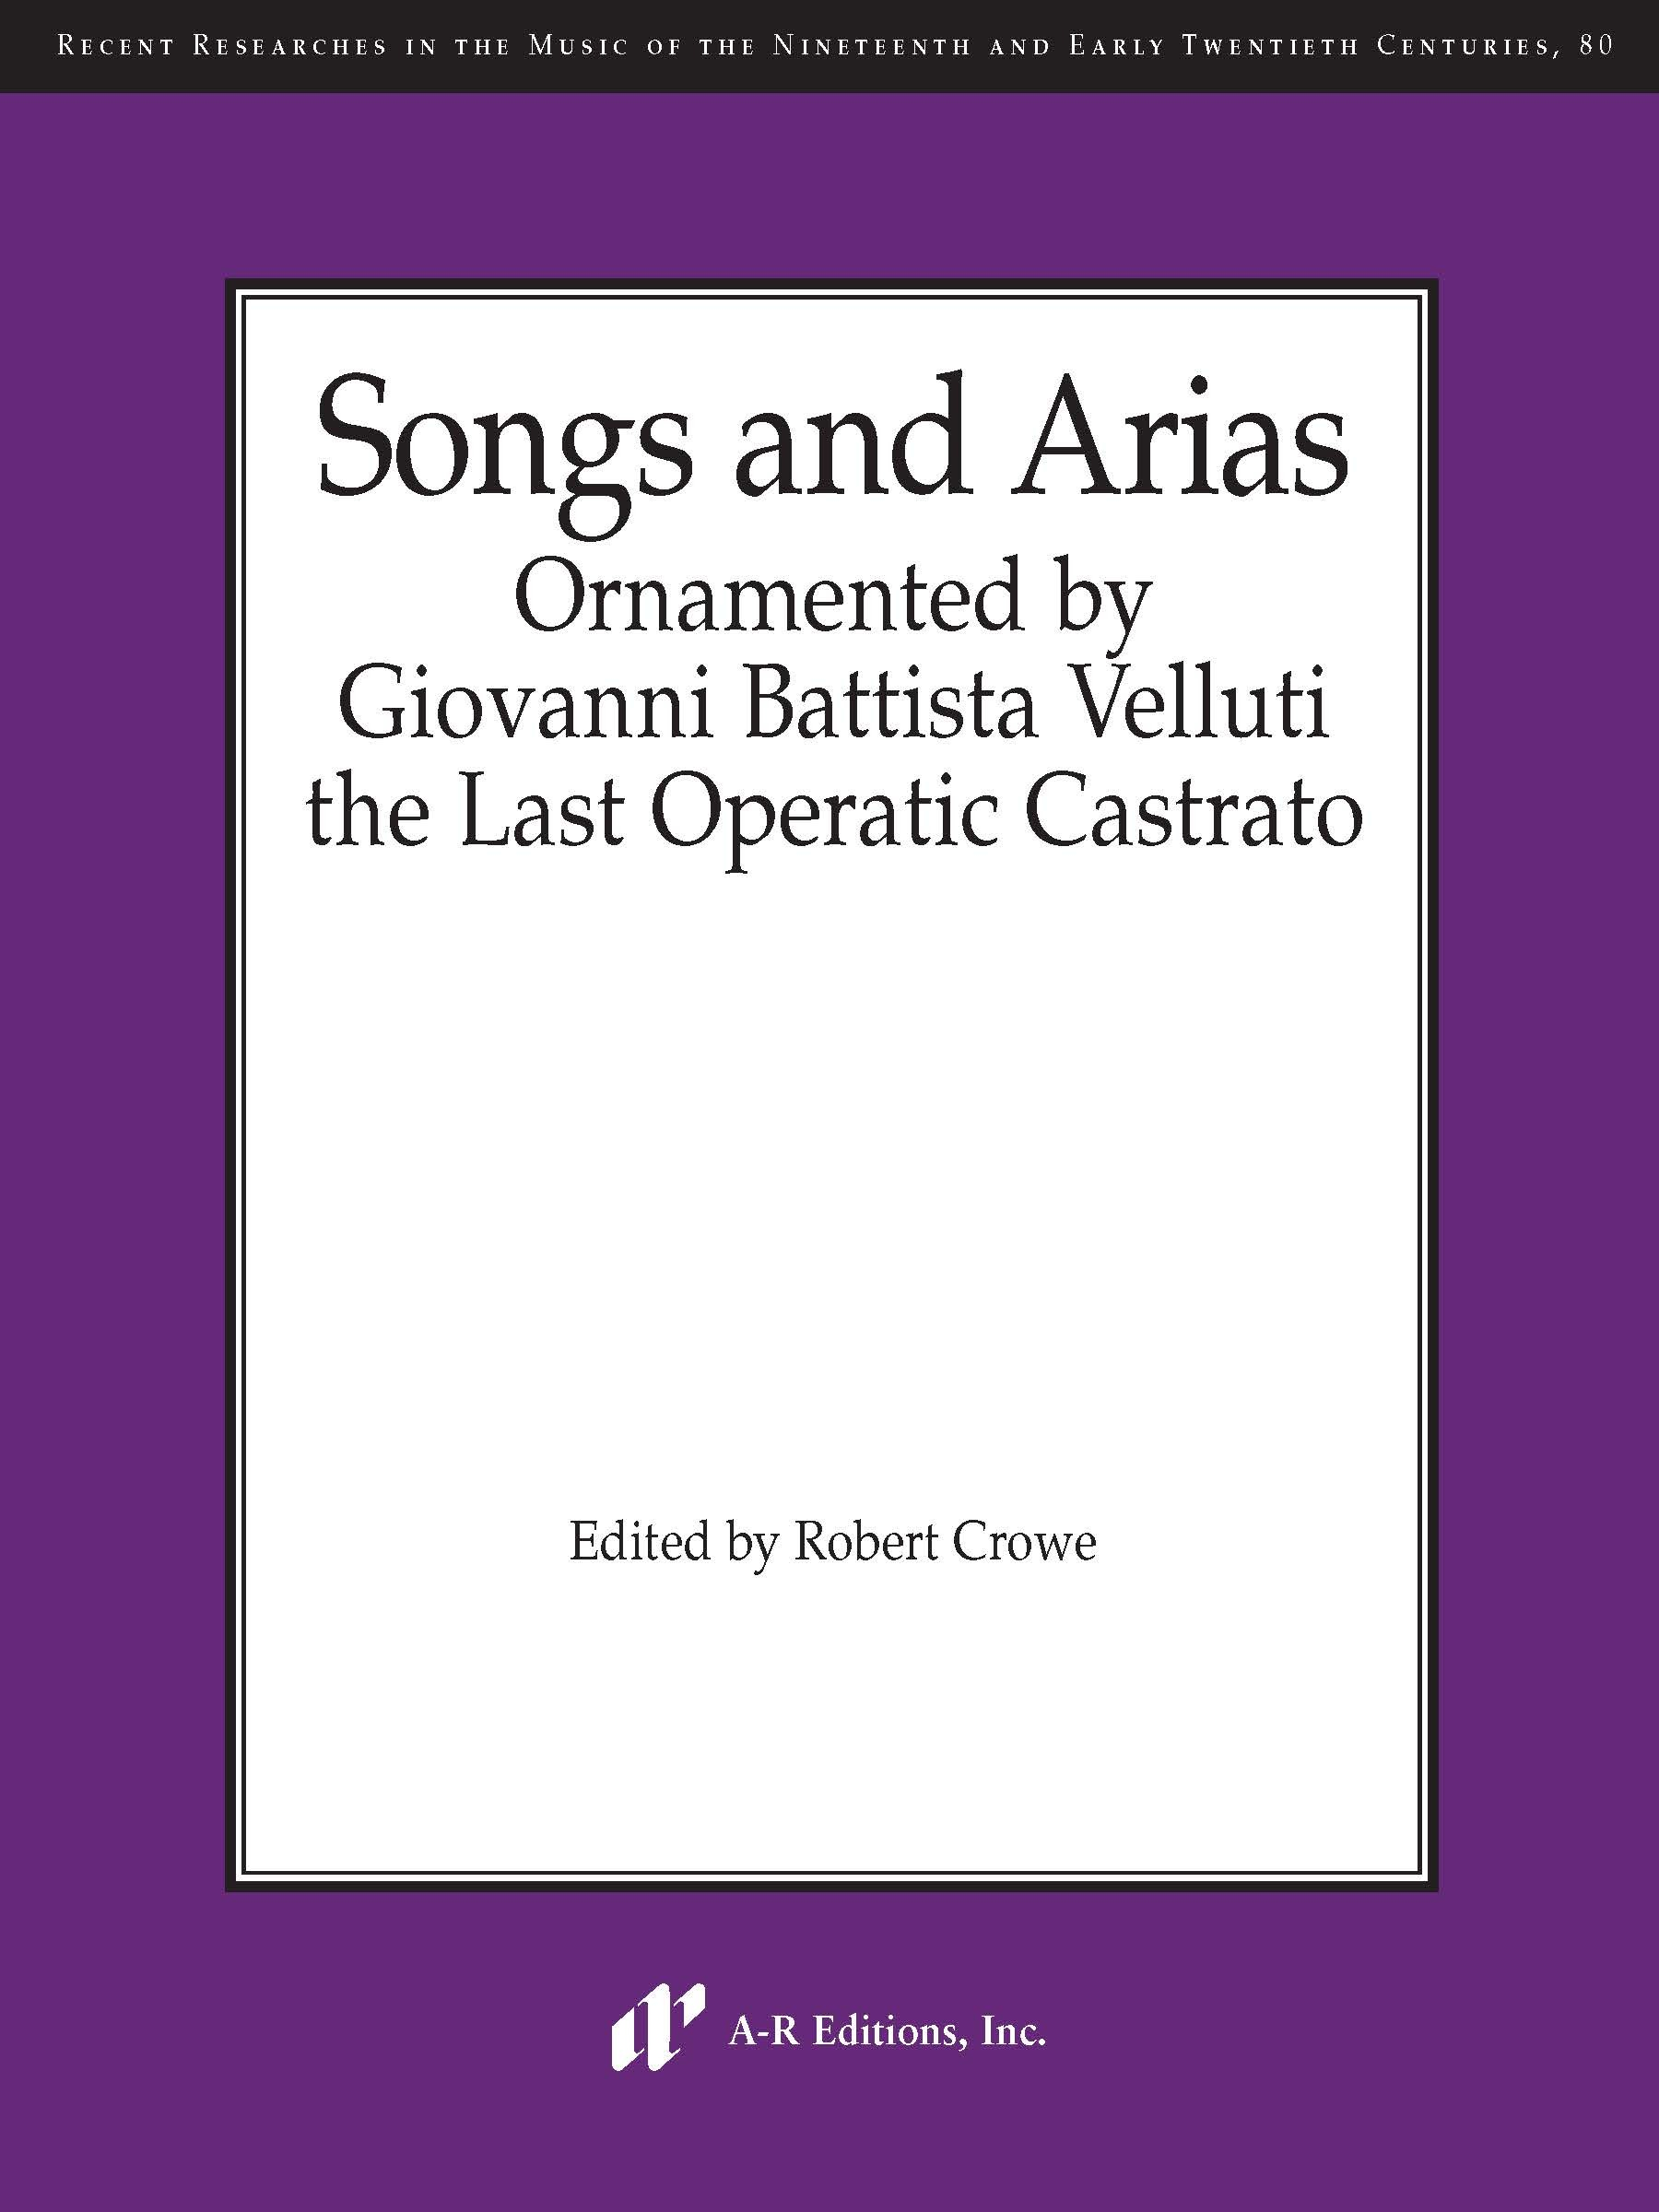 Songs and Arias Ornamented by Velluti